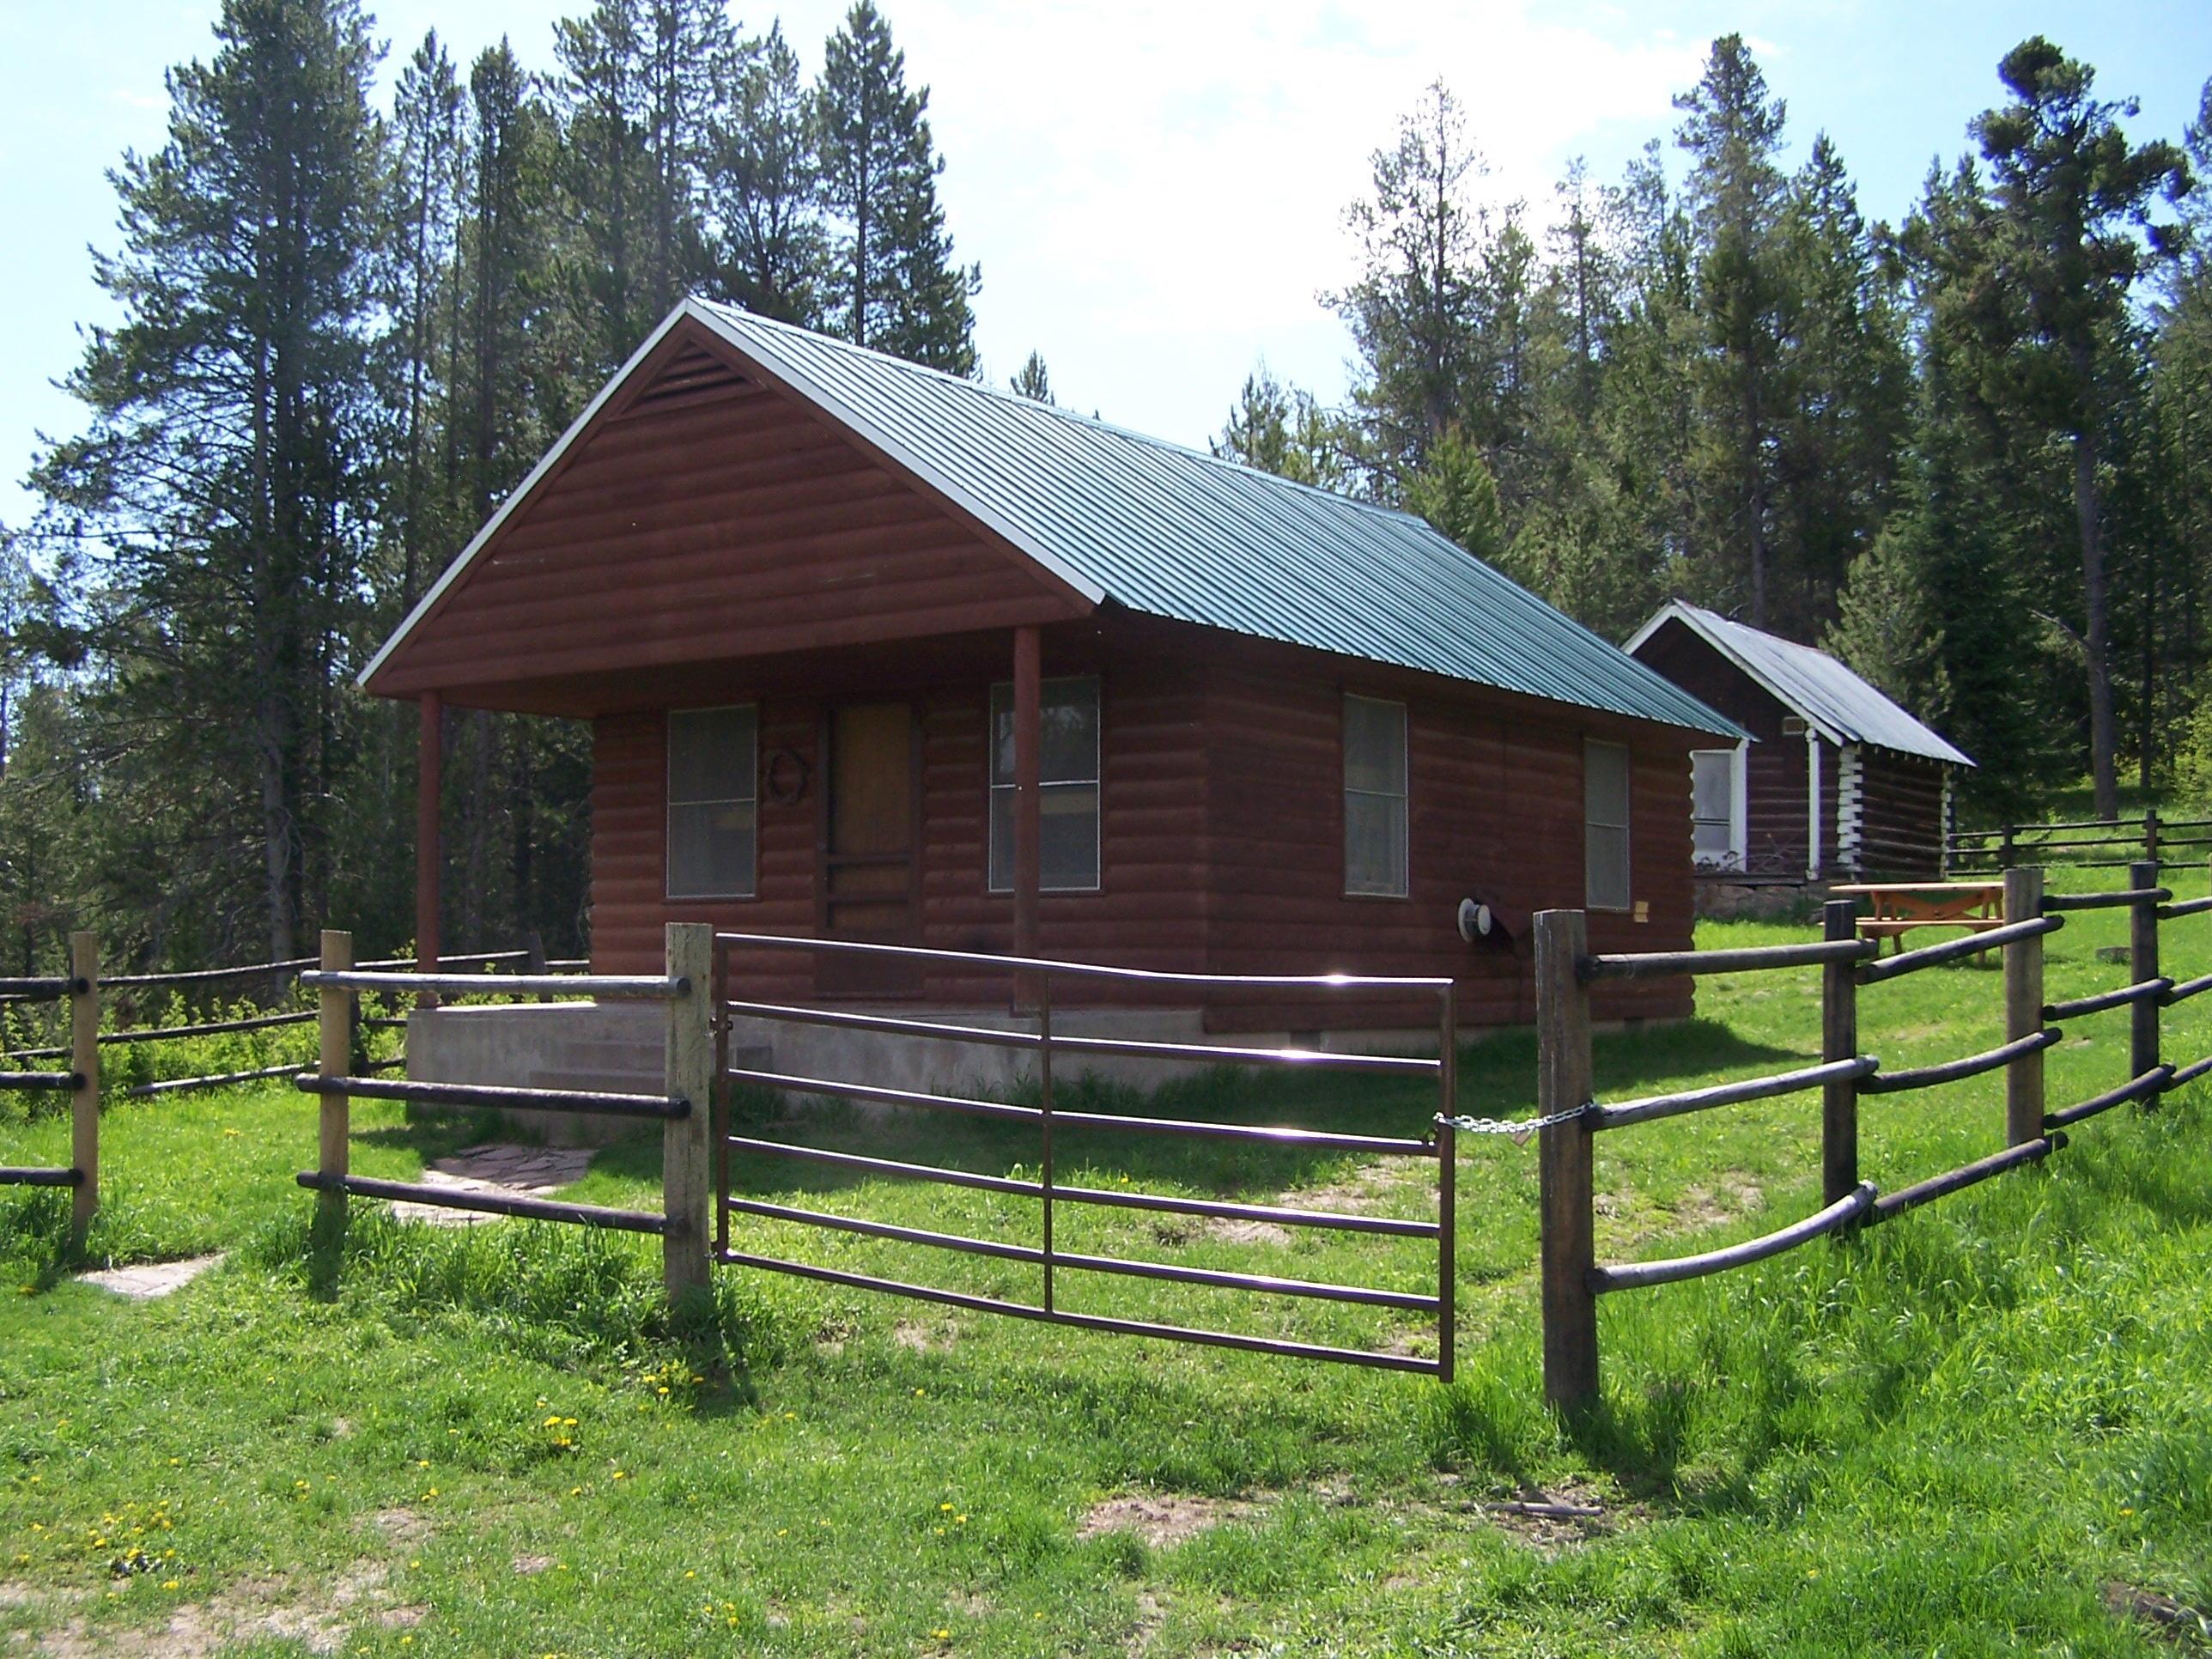 Caribou-Targhee National Forest - Offices